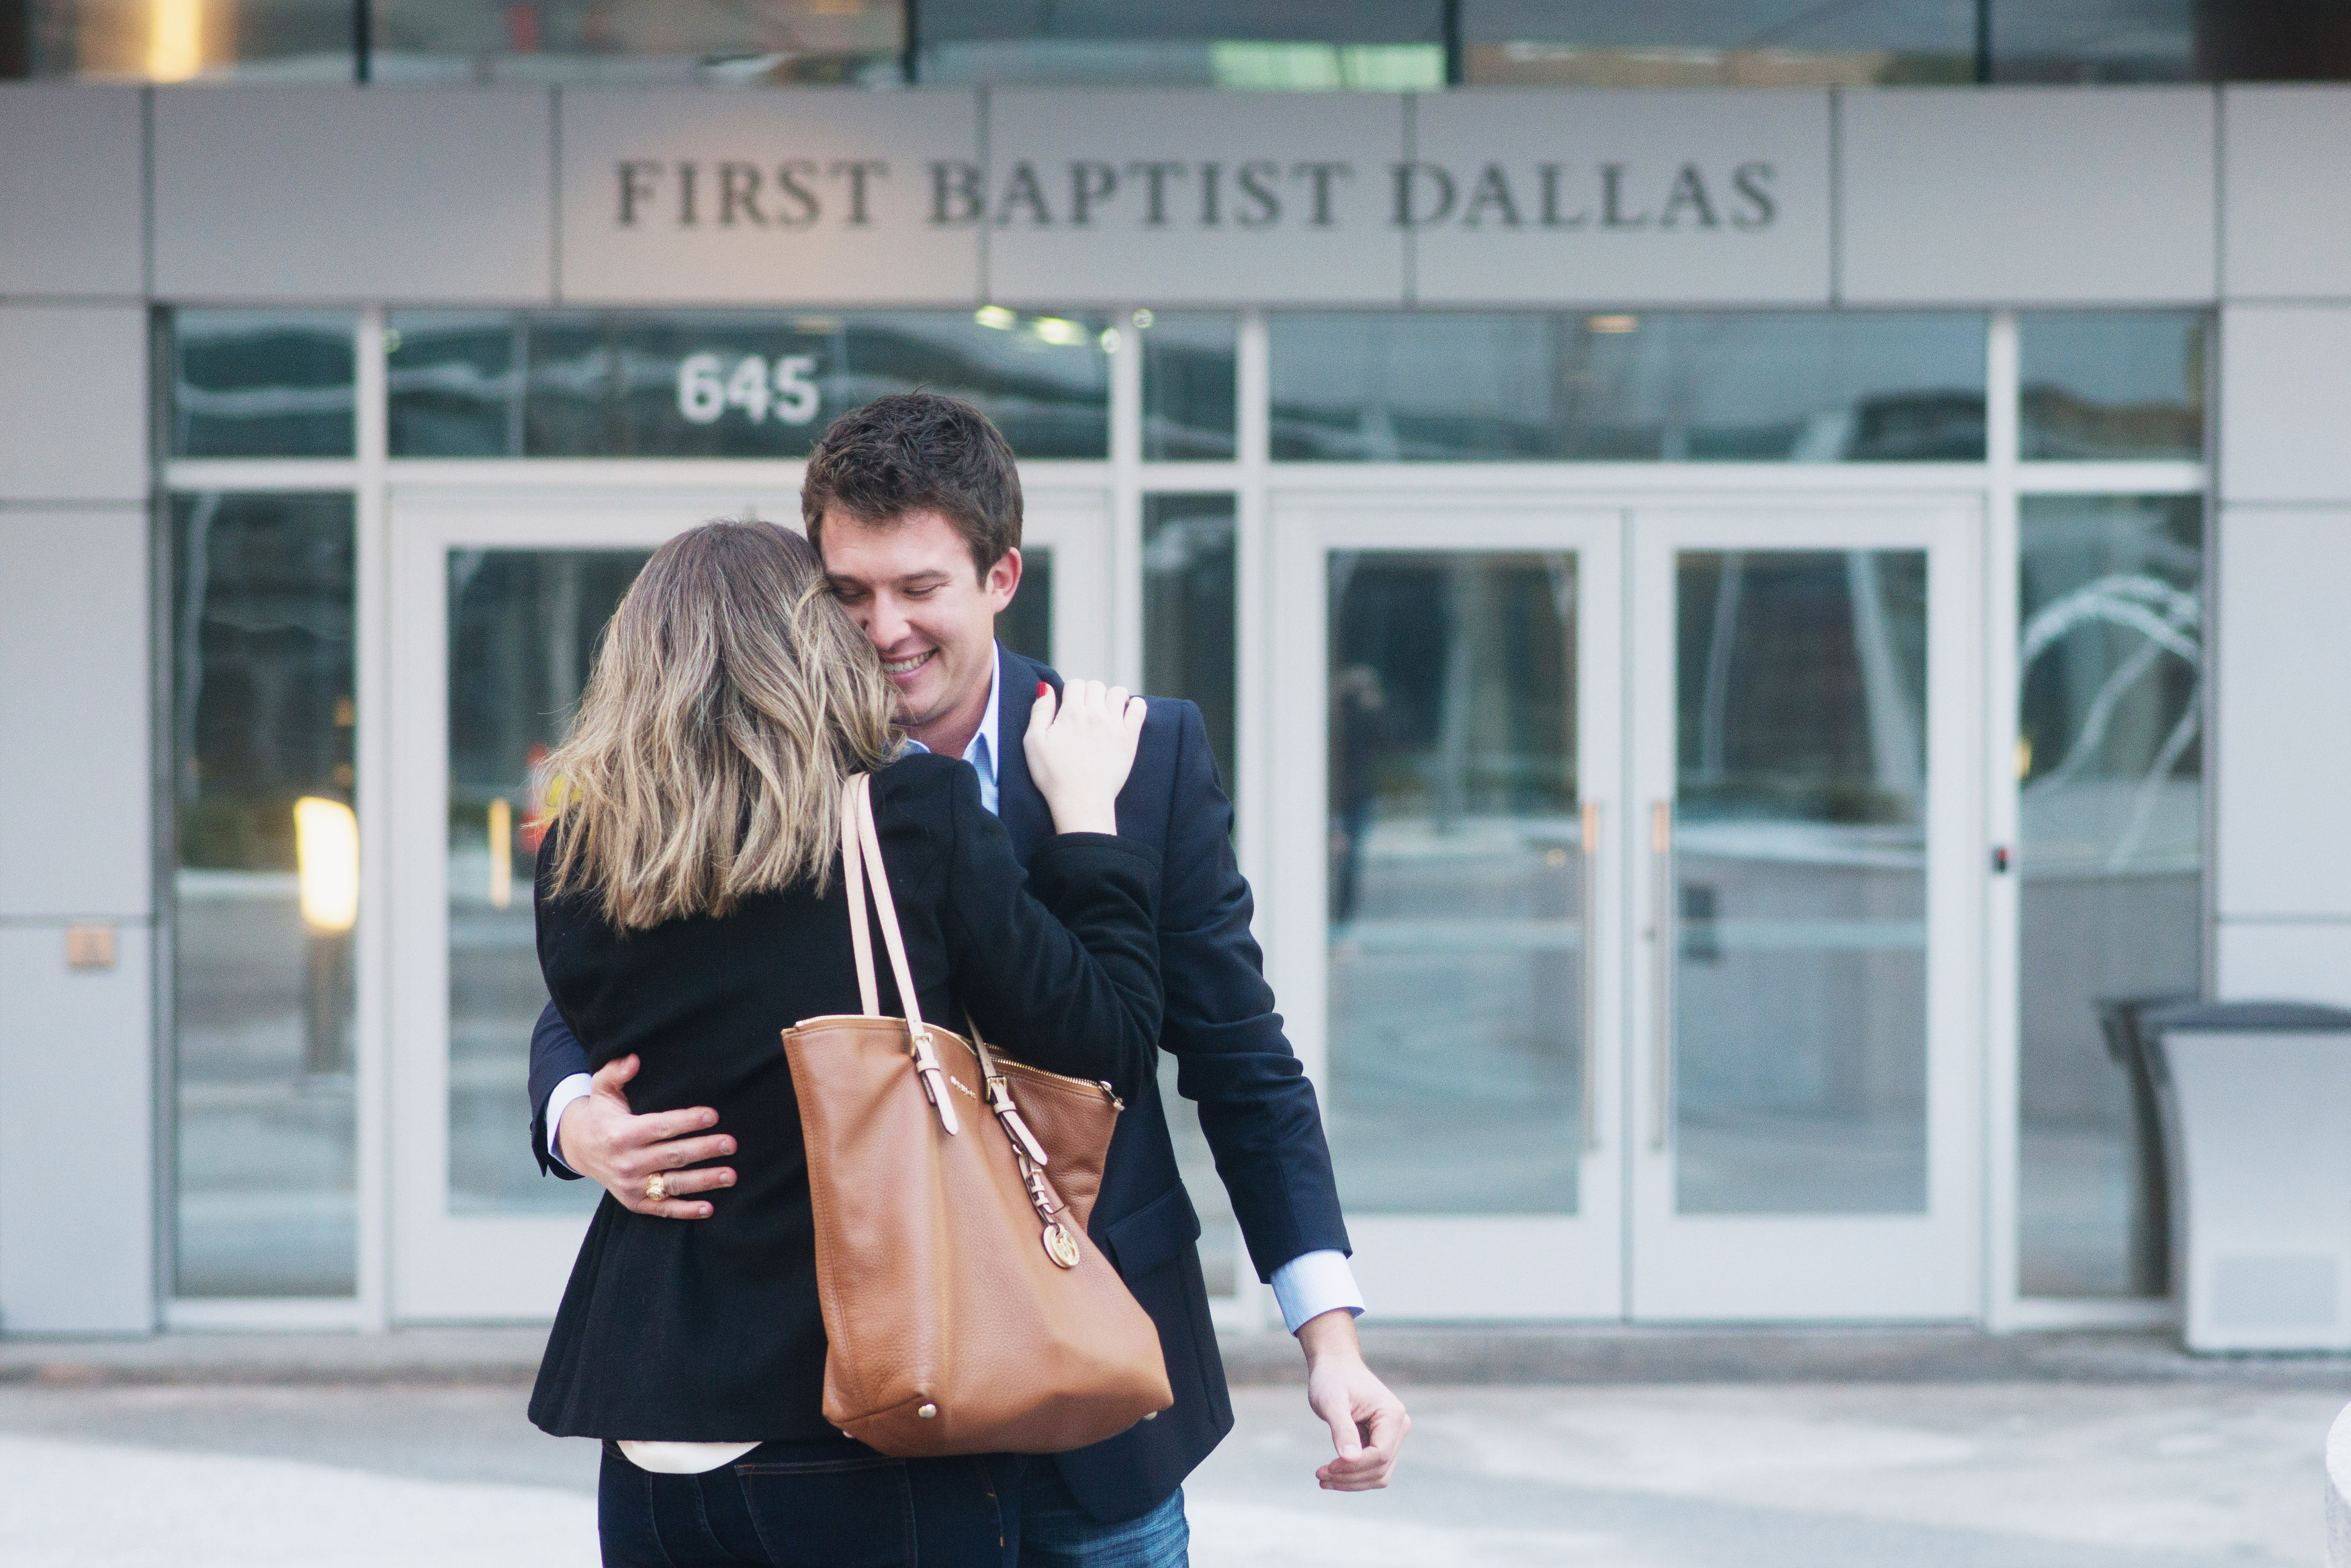 Image 1 of Sam and Jennifer | Dallas Marriage Proposal